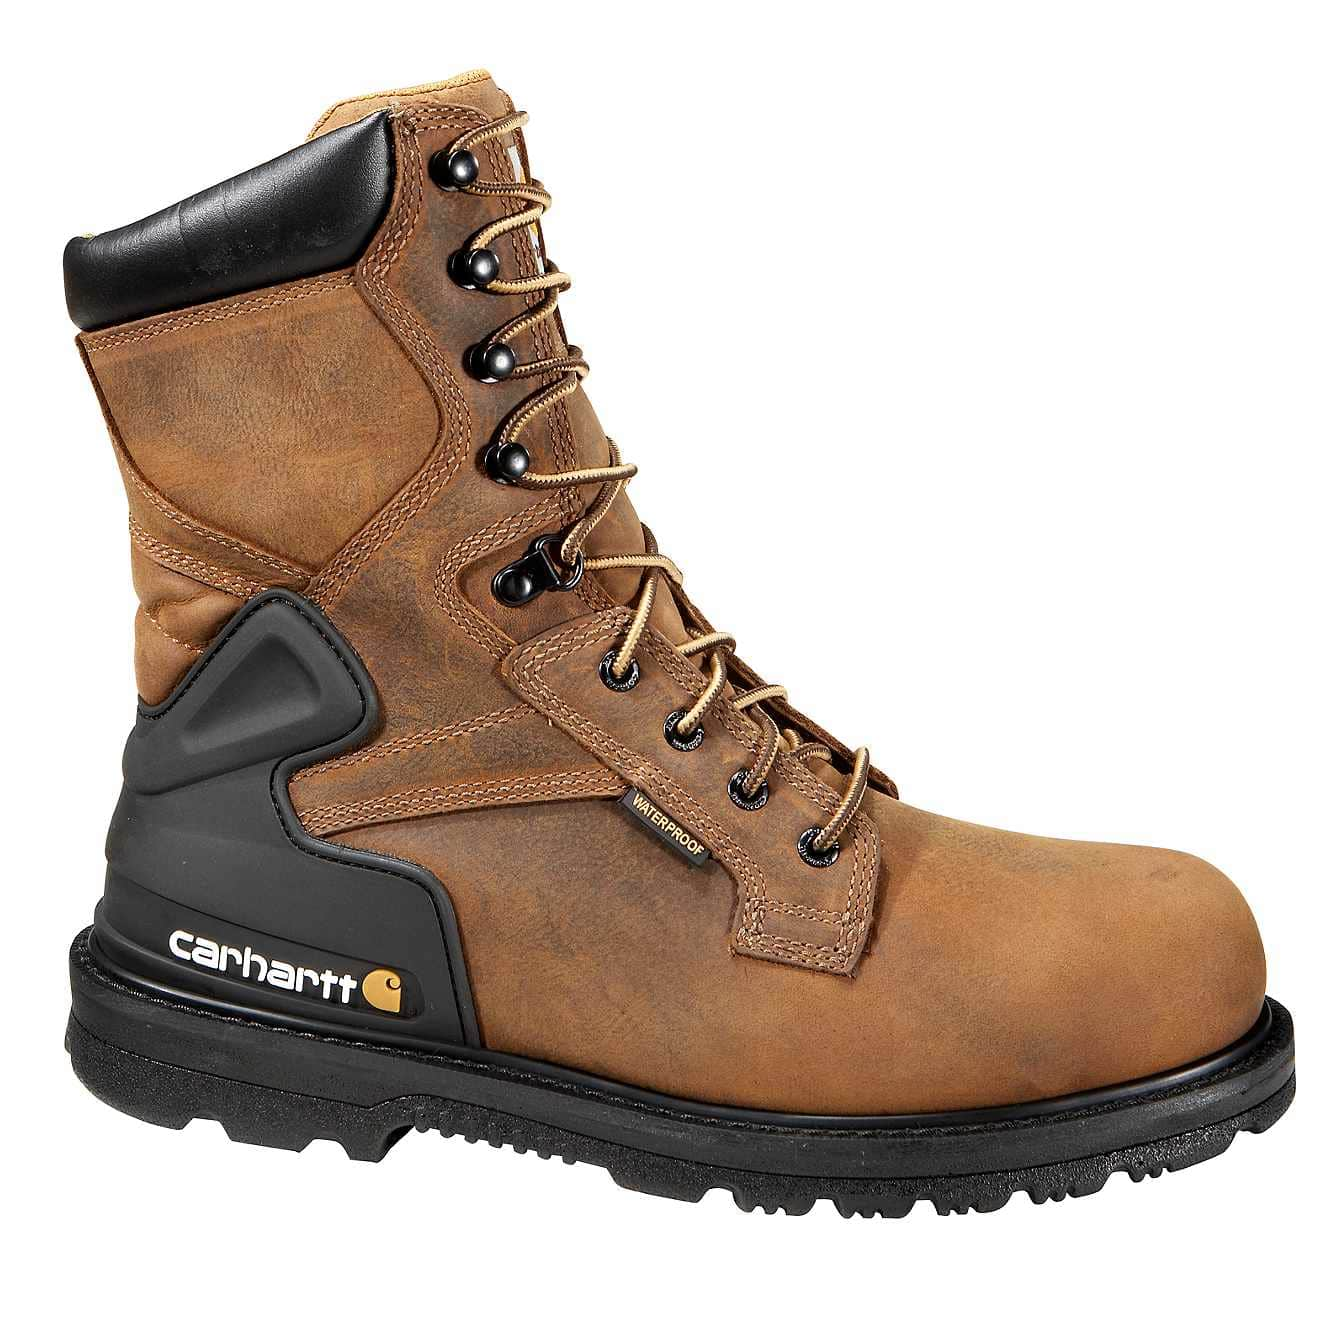 "Men's Carhartt 8"" Non-Safety Toe Work Boots, CMW8100"